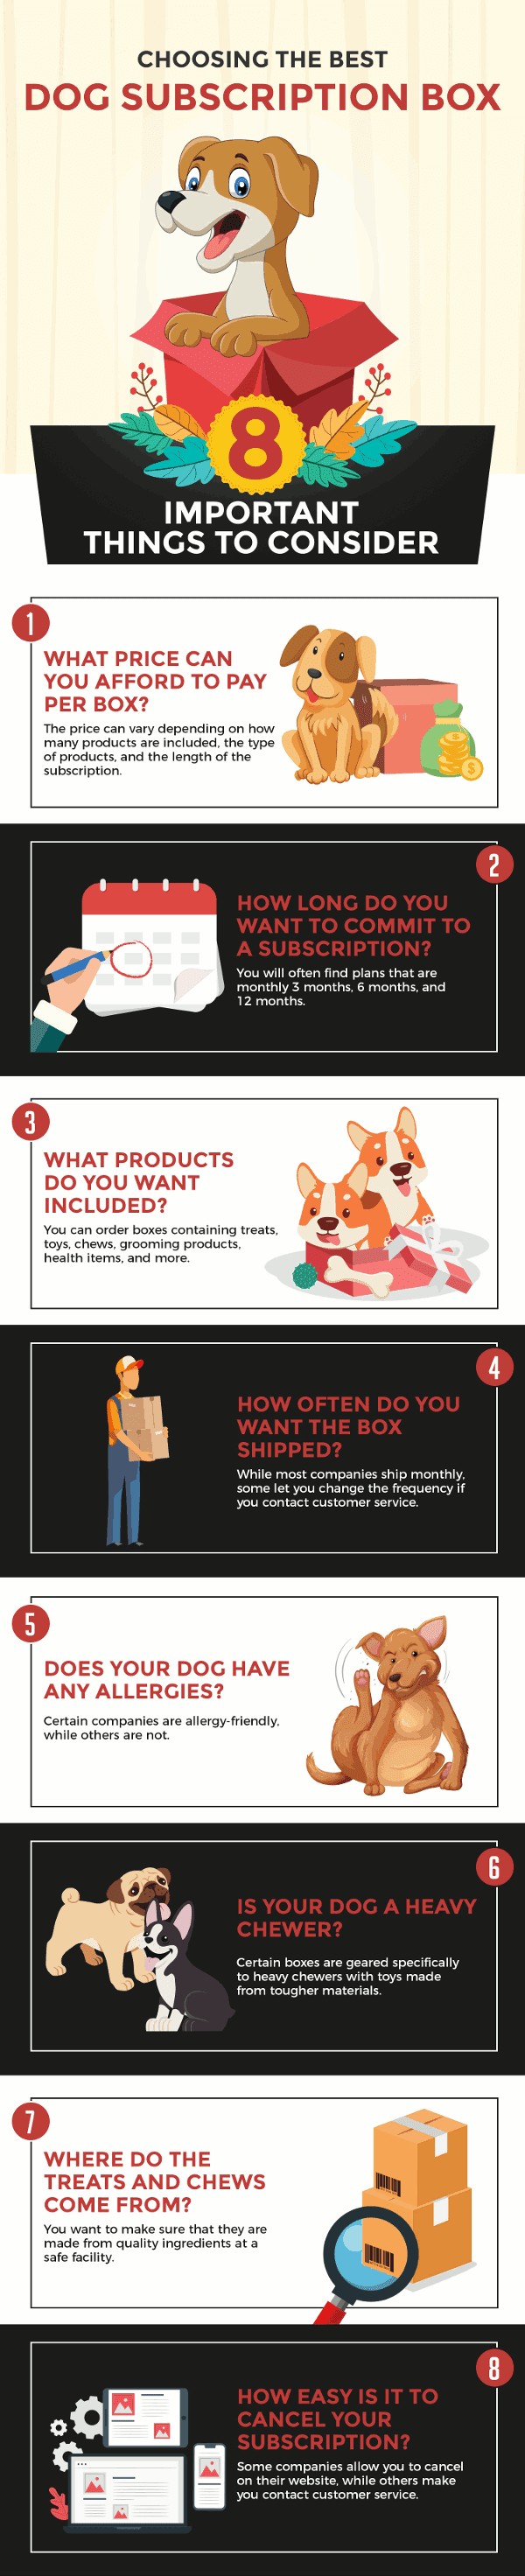 The 11 Best Dog Subscription Boxes for 2020 #infographic